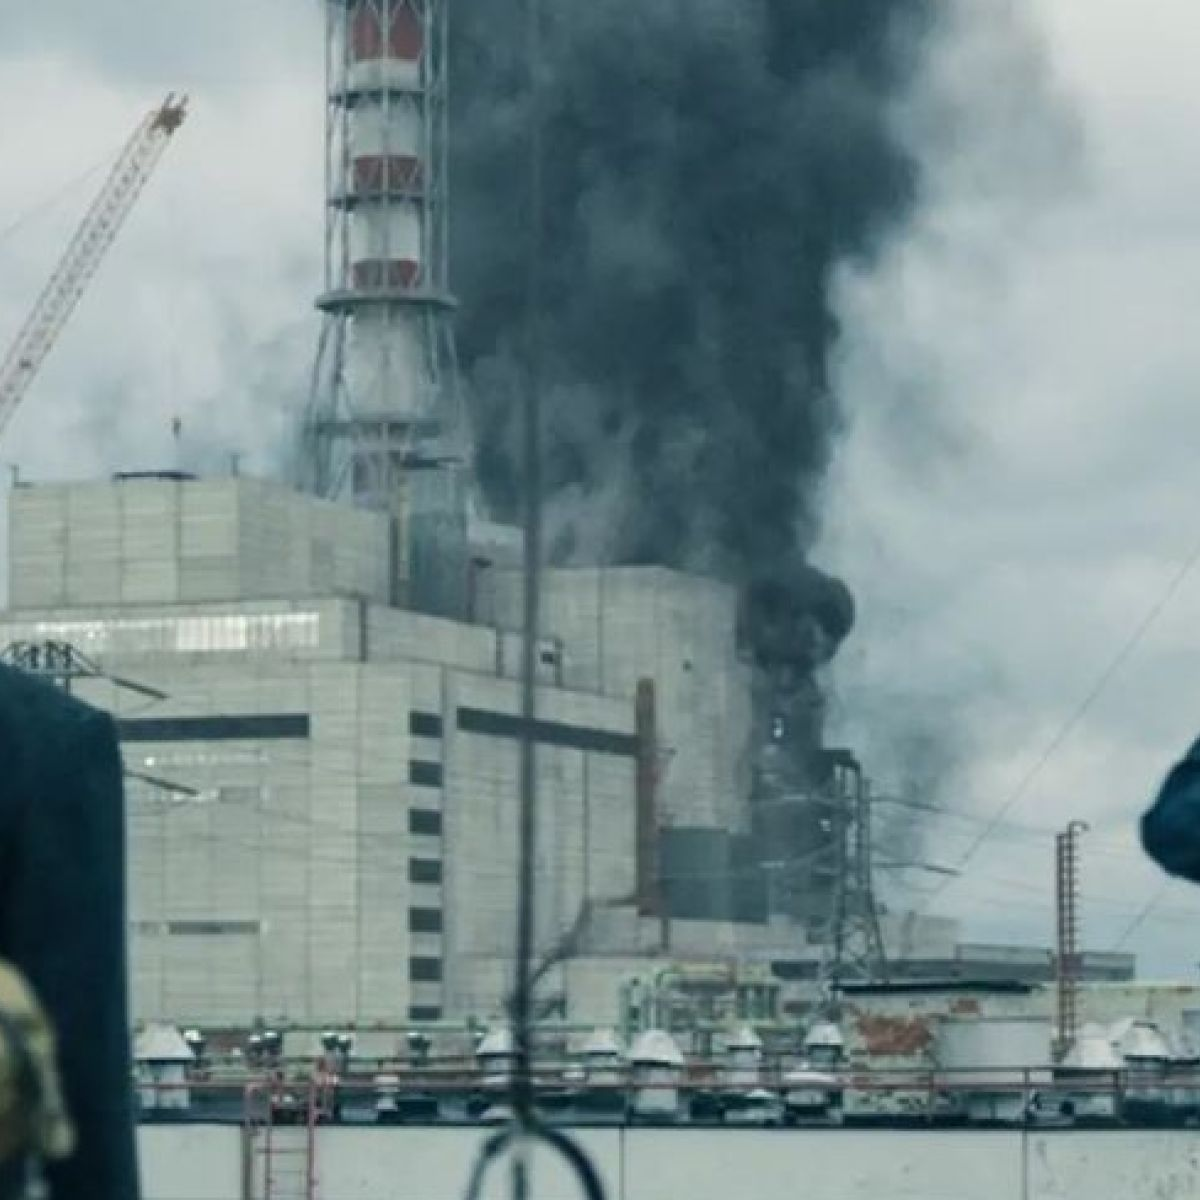 Chernobyl: A nuclear disaster is unsettlingly lovely to look at